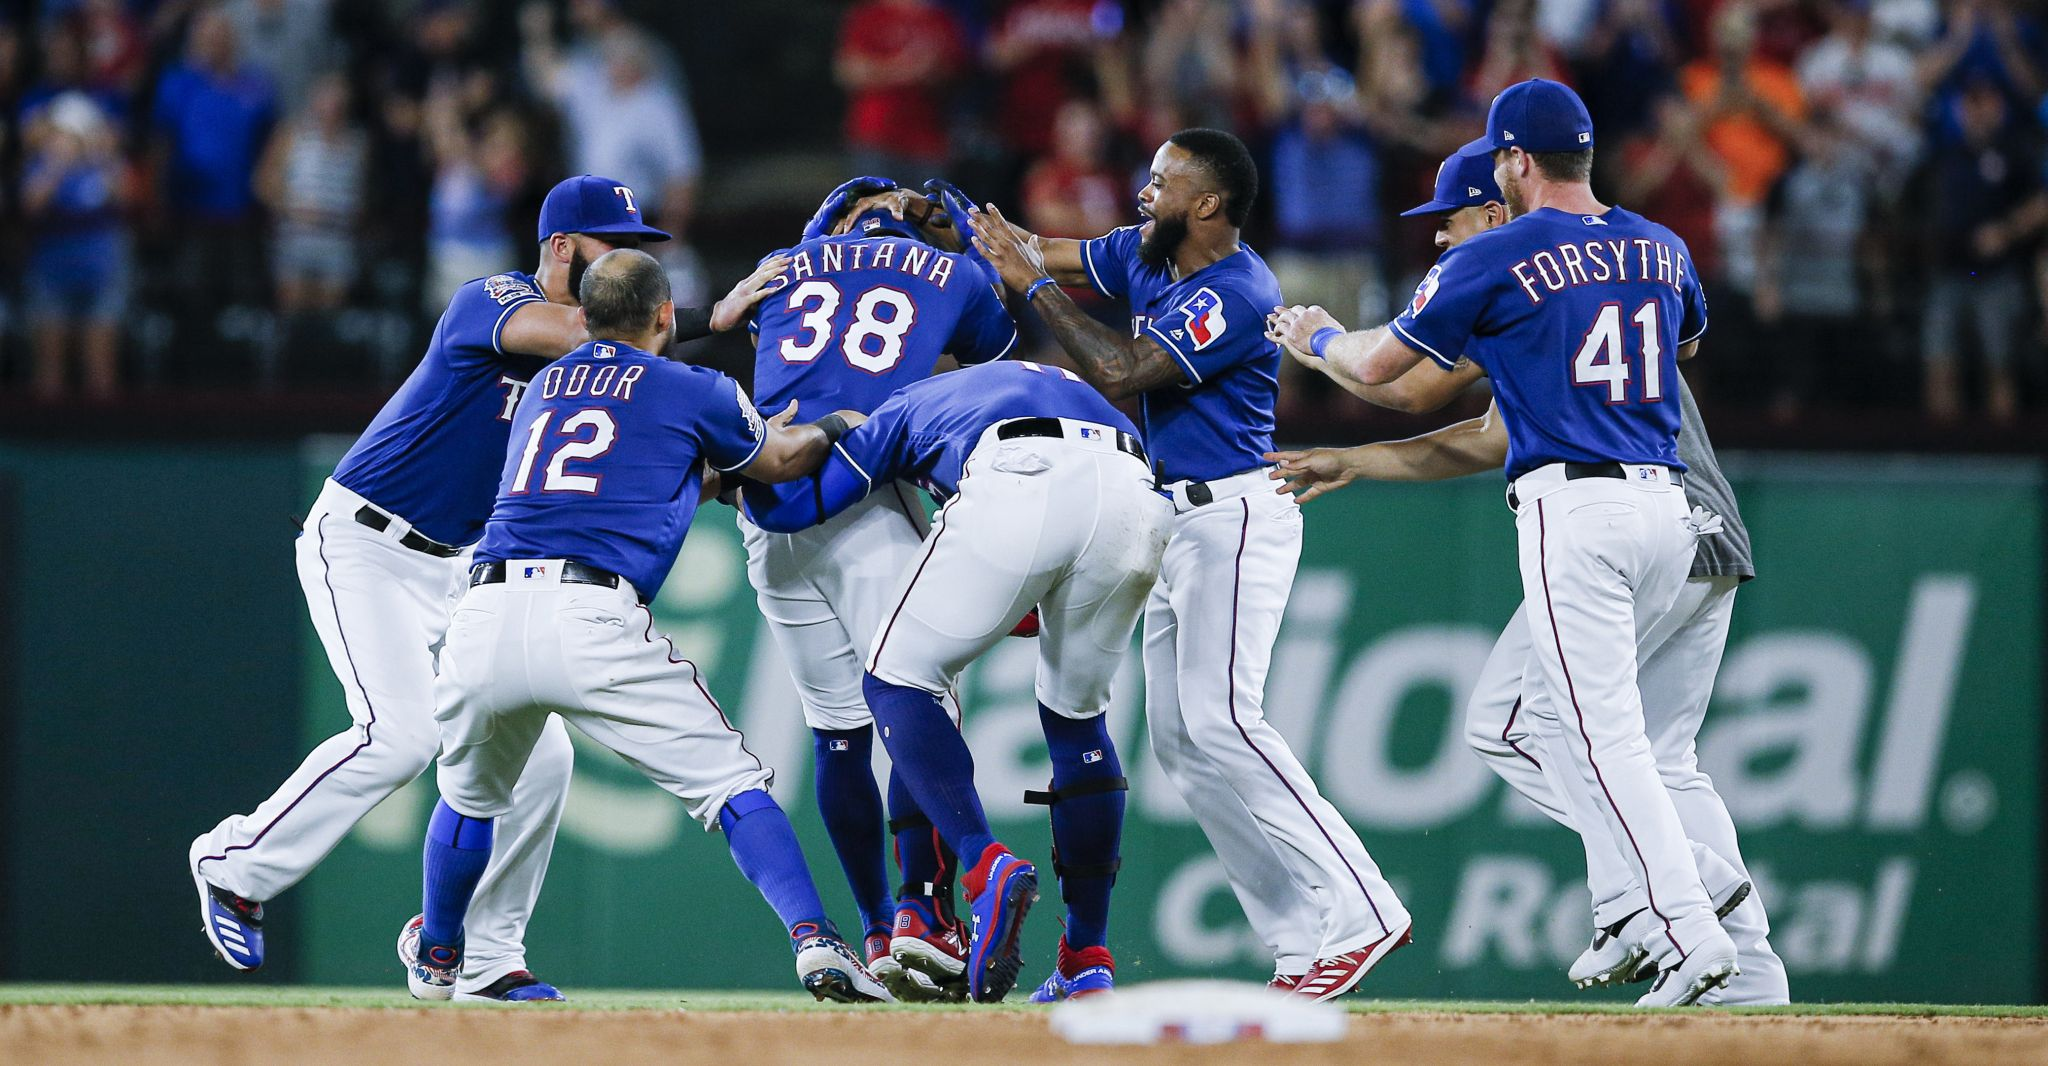 Rangers' offensive approach impresses Astros' A.J. Hinch